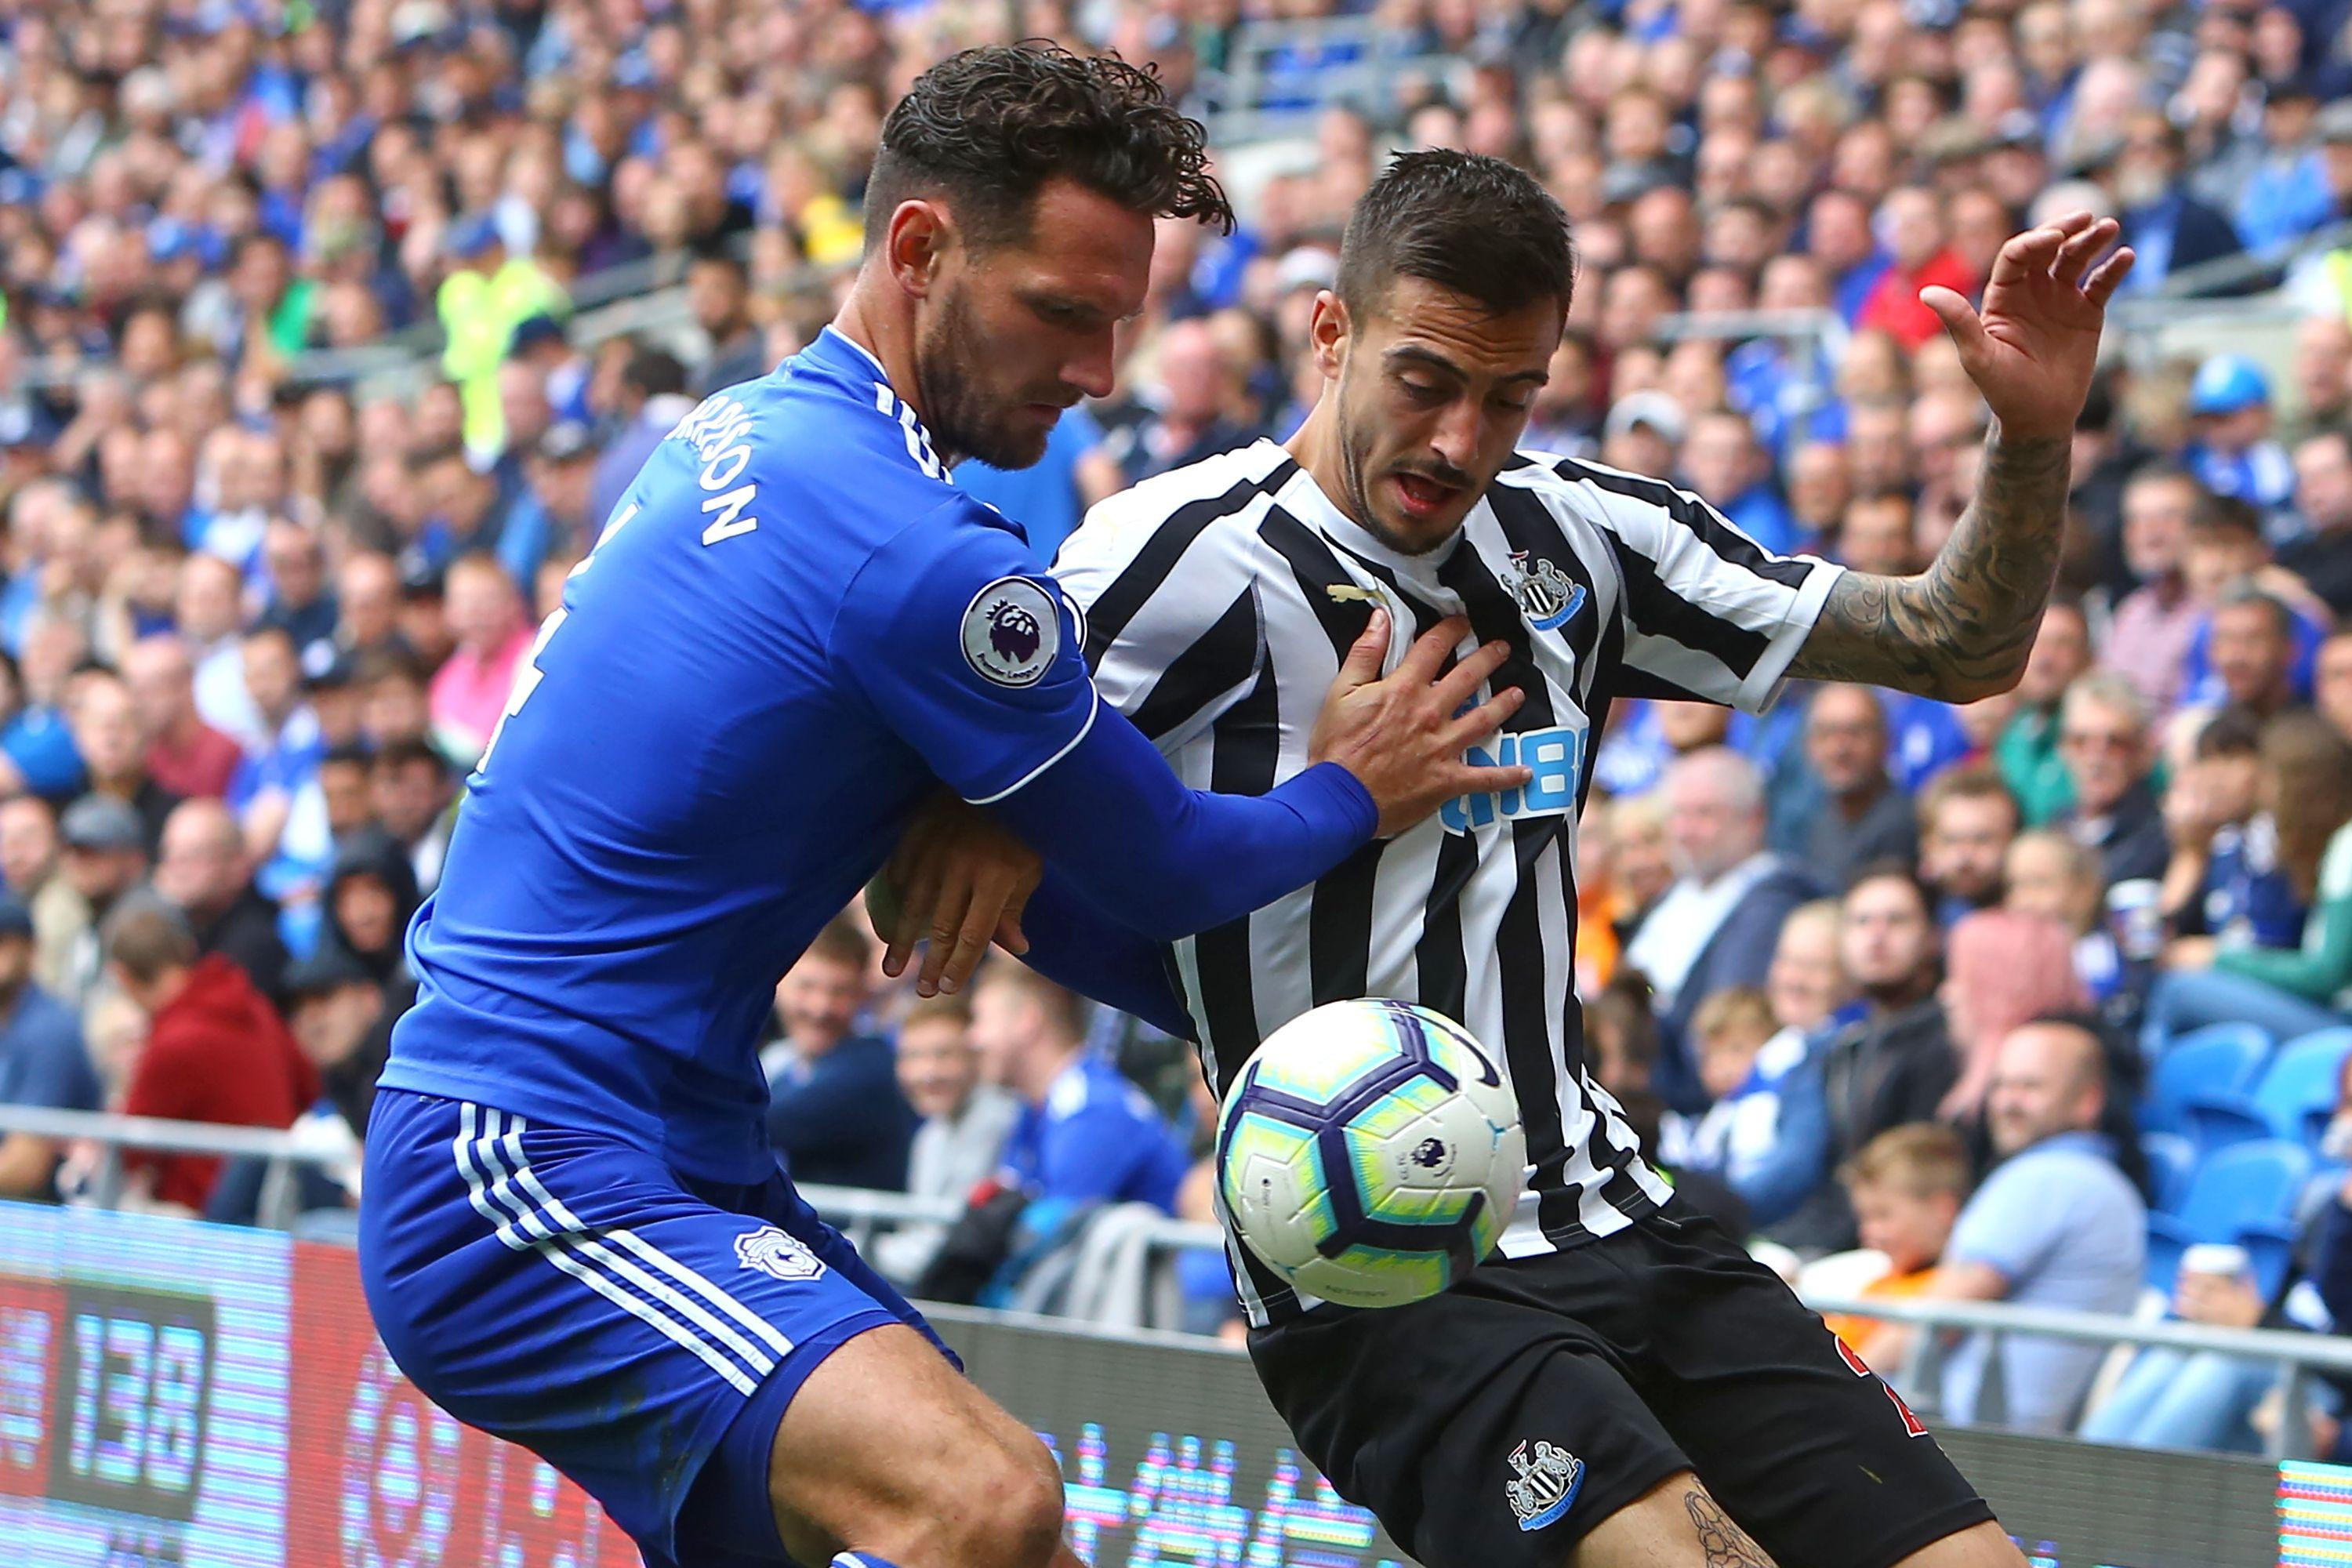 Sean Morrison and Joselu battle for the ball